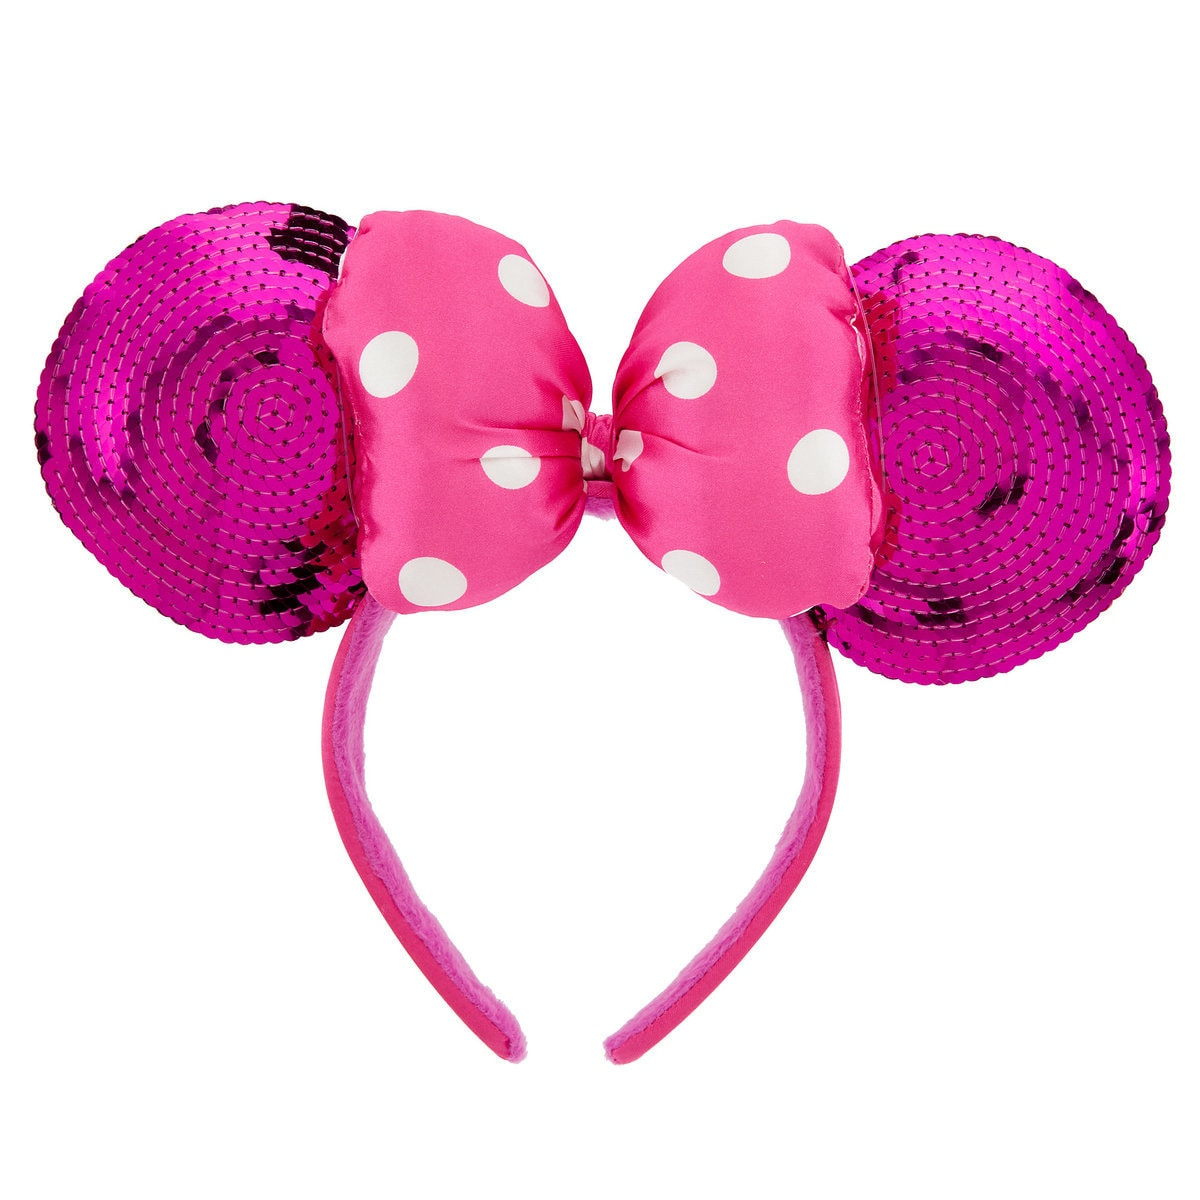 f646aa4b0 Product Image of Minnie Mouse Ears Headband for Girls - Pink Sequin # 1